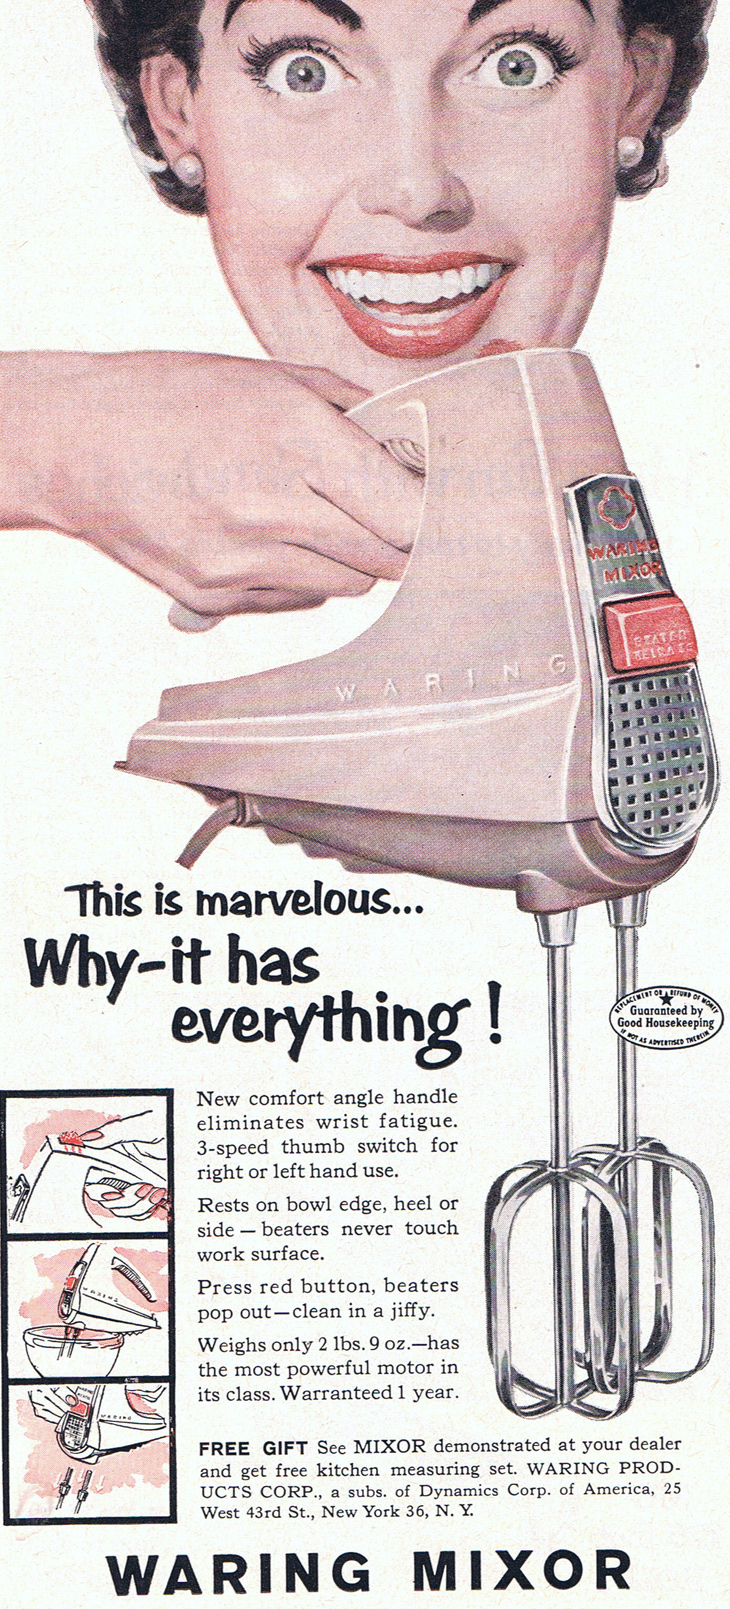 Retro pink Waring Mixor ad from 1955